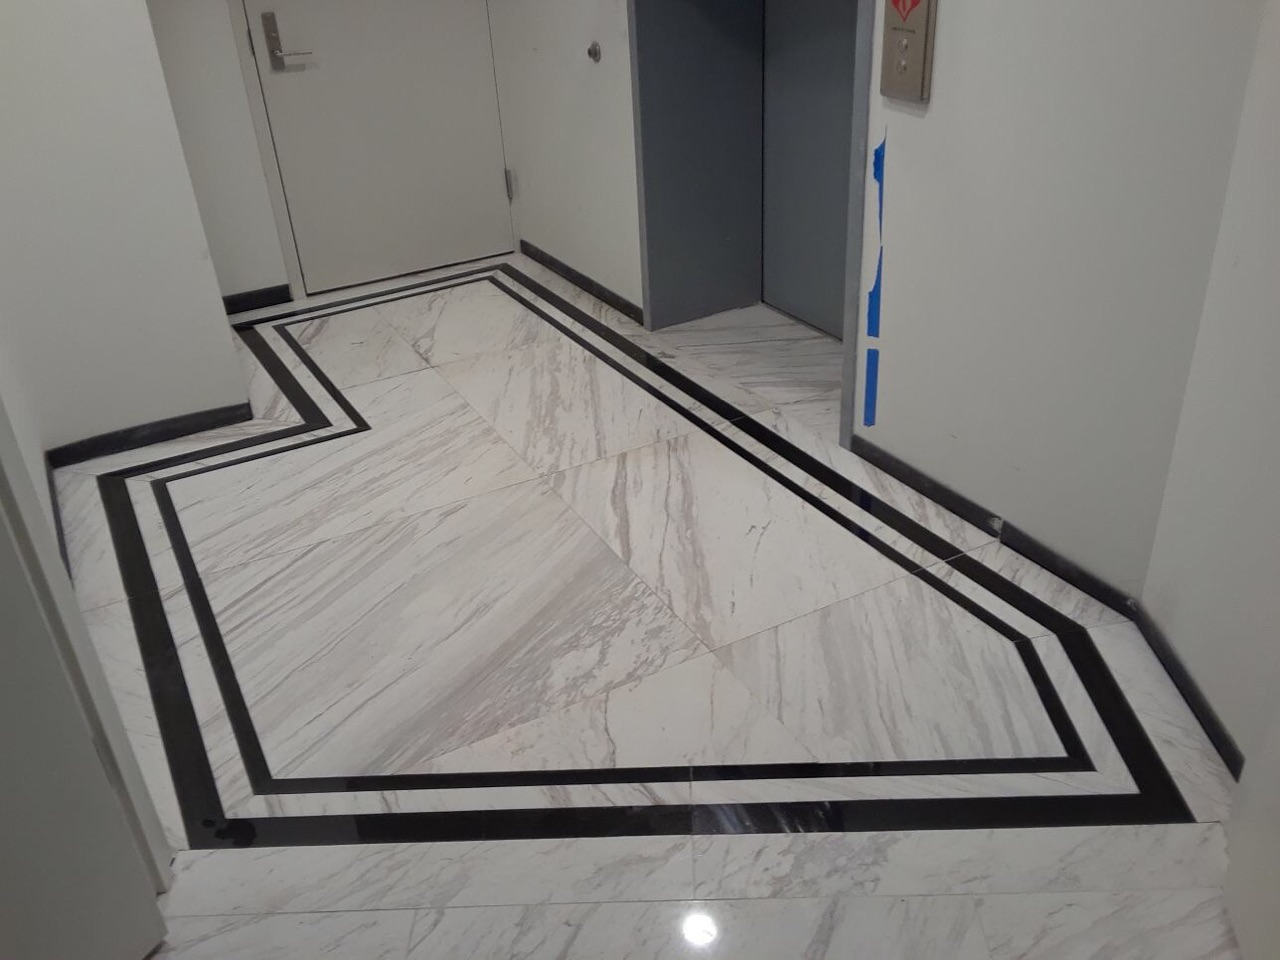 Dolomite Marble (Paramount Fort Lauderdale)